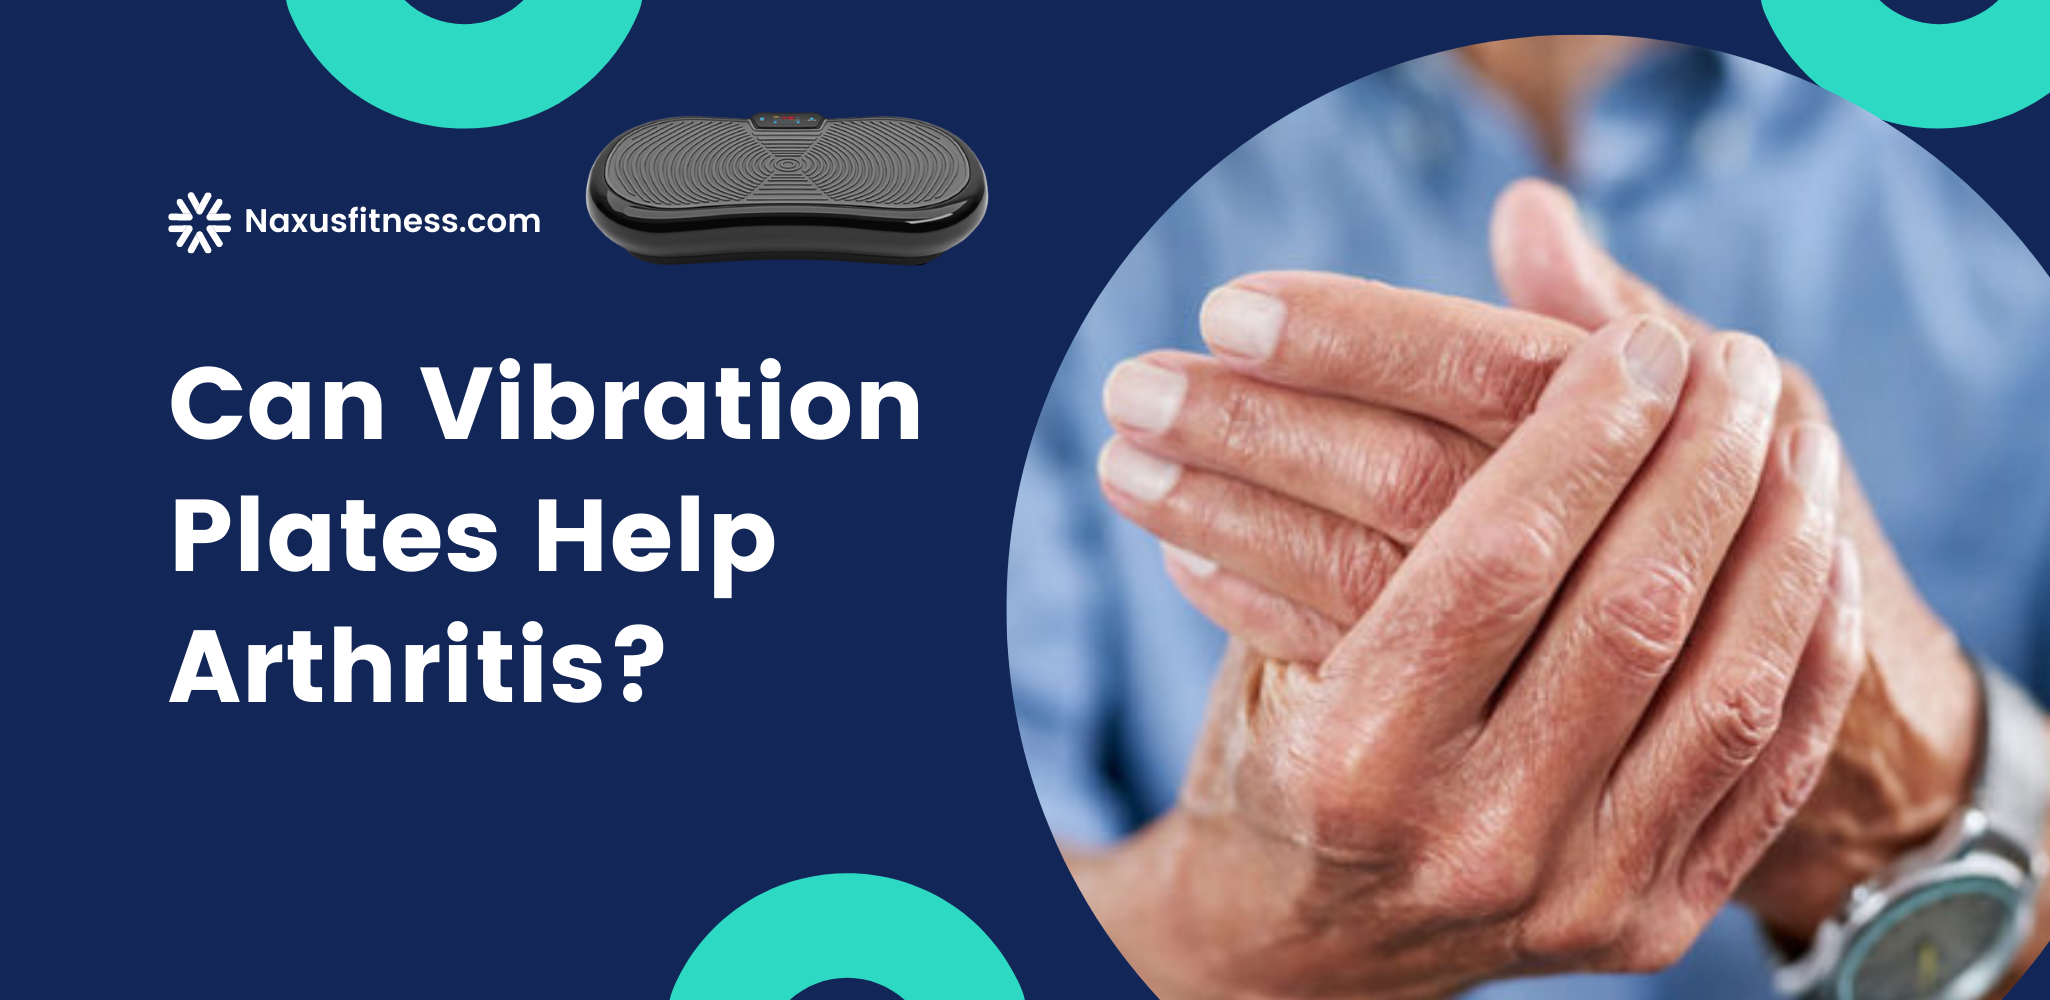 Can vibration plates help with Arthritis